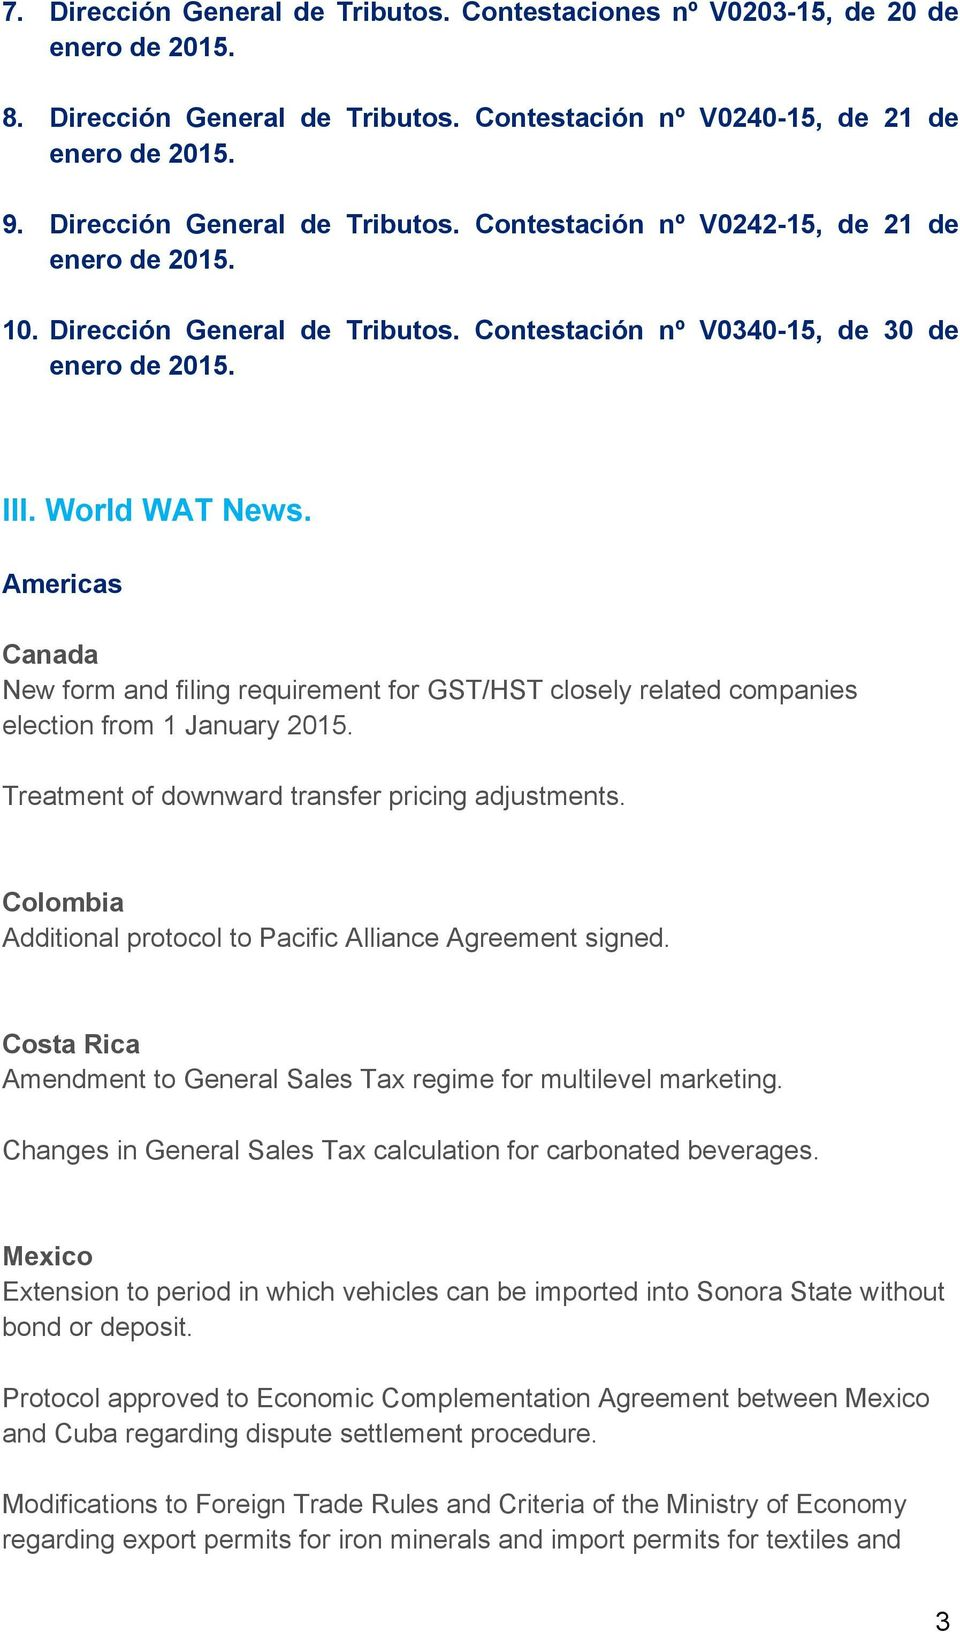 Americas Canada New form and filing requirement for GST/HST closely related companies election from 1 January 2015. Treatment of downward transfer pricing adjustments.